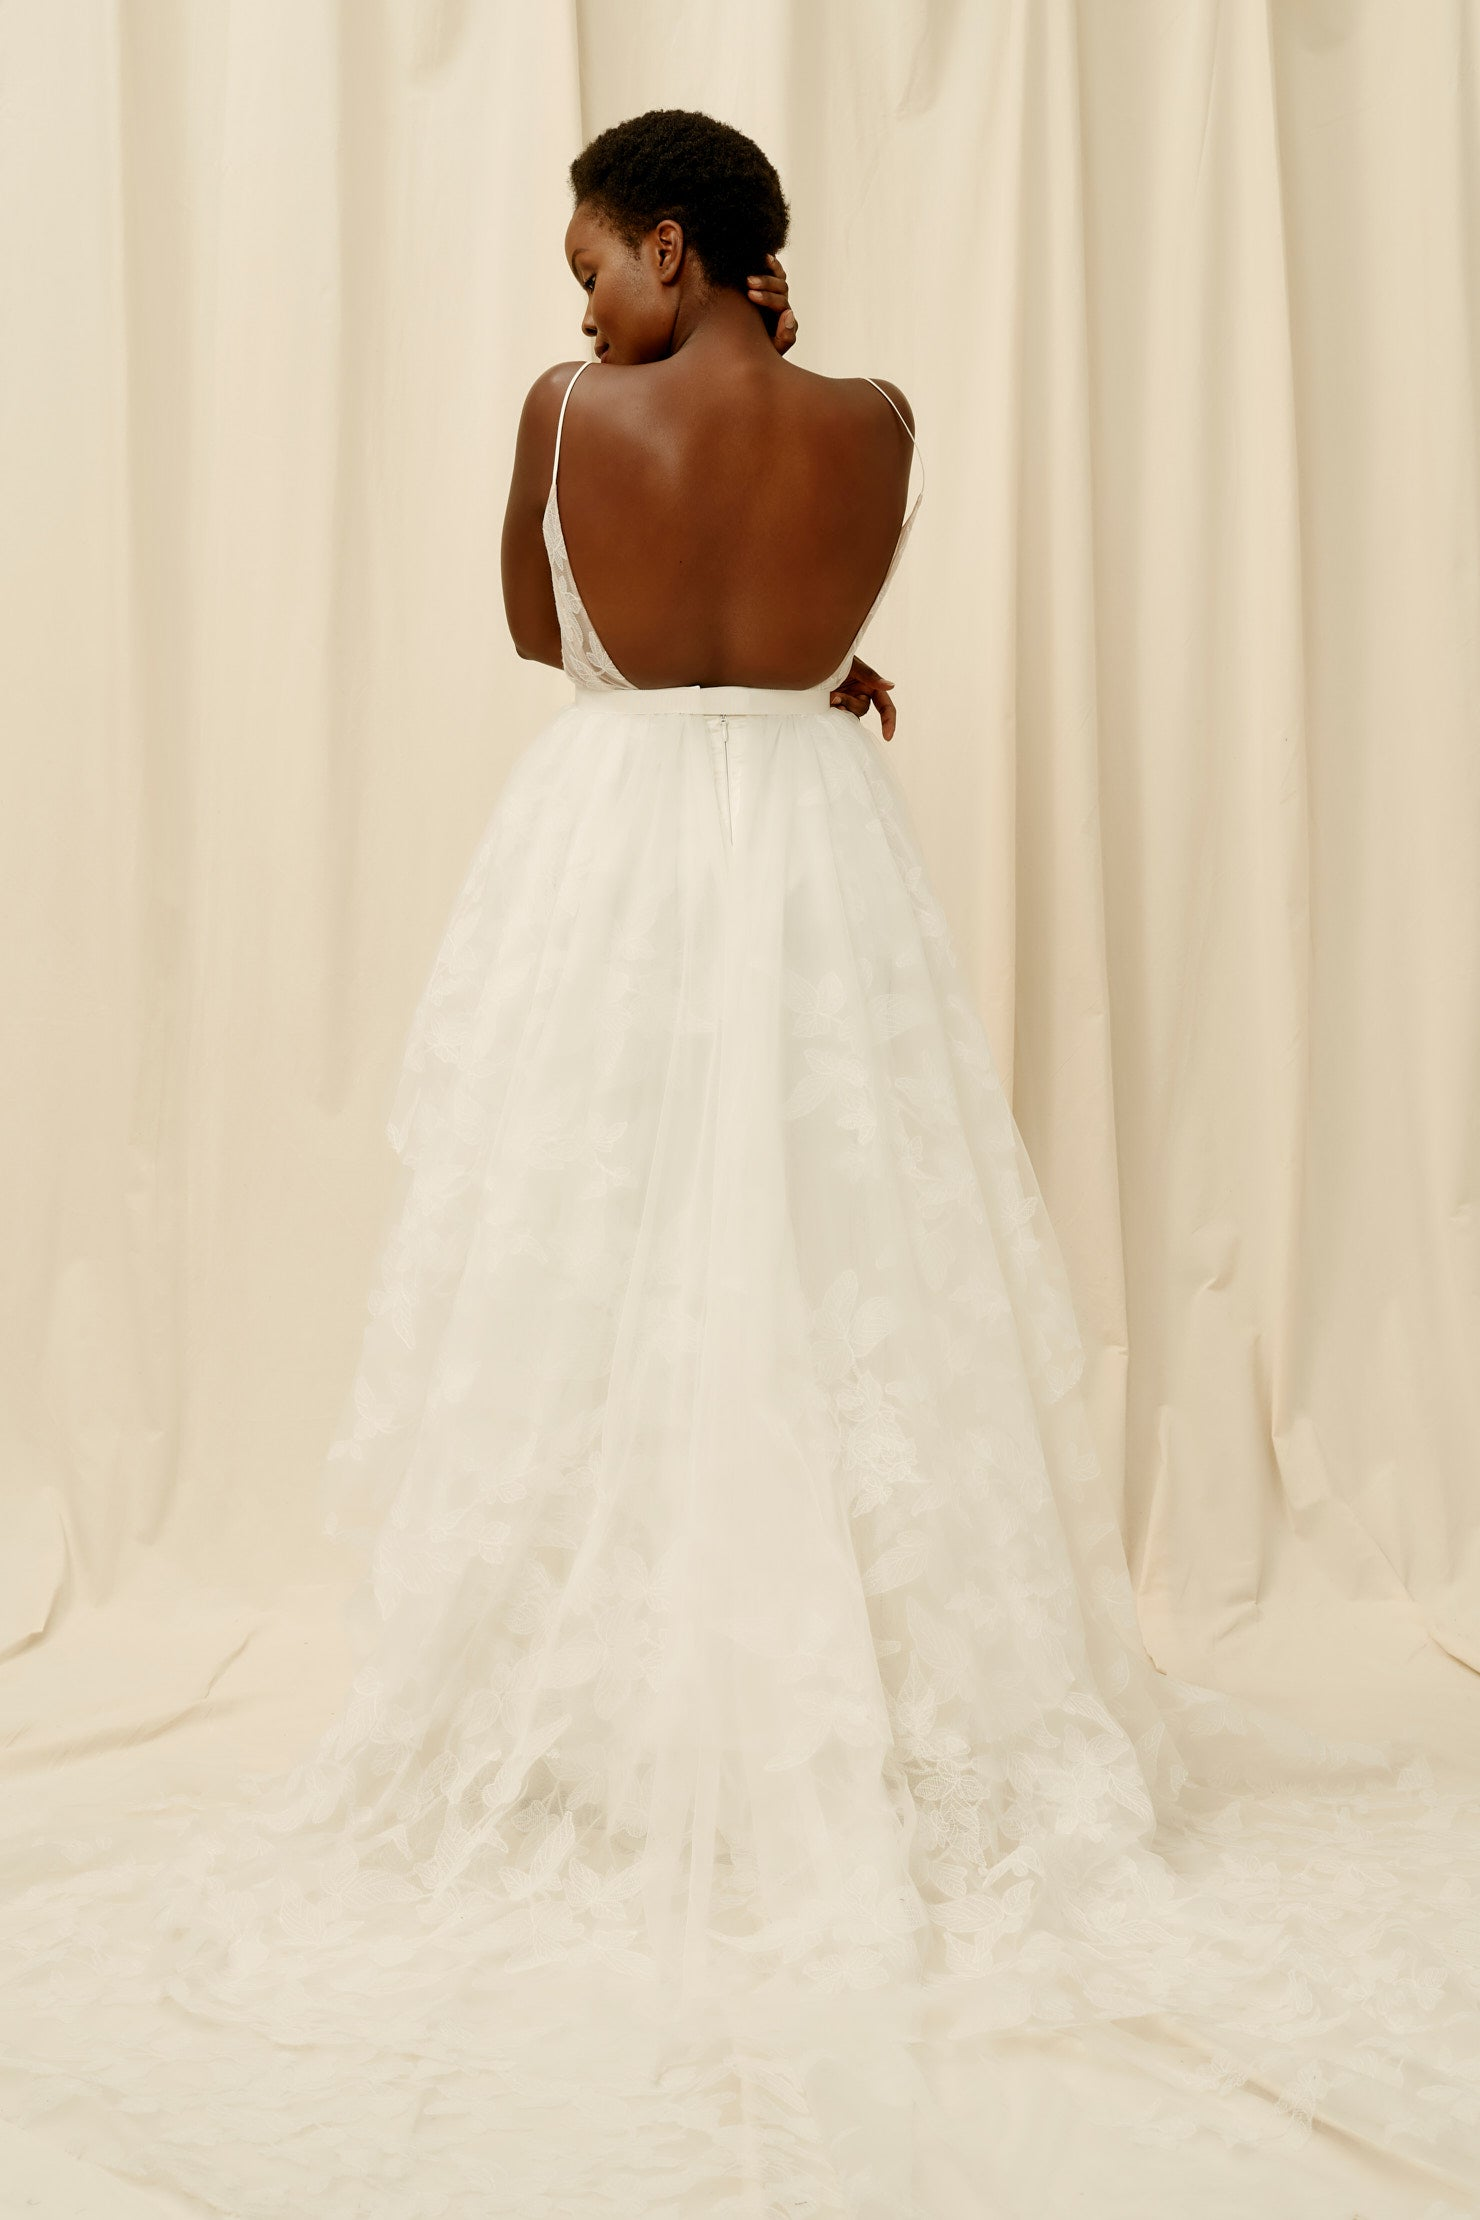 Backless wedding dress with 3 tiered skirt and unique lace